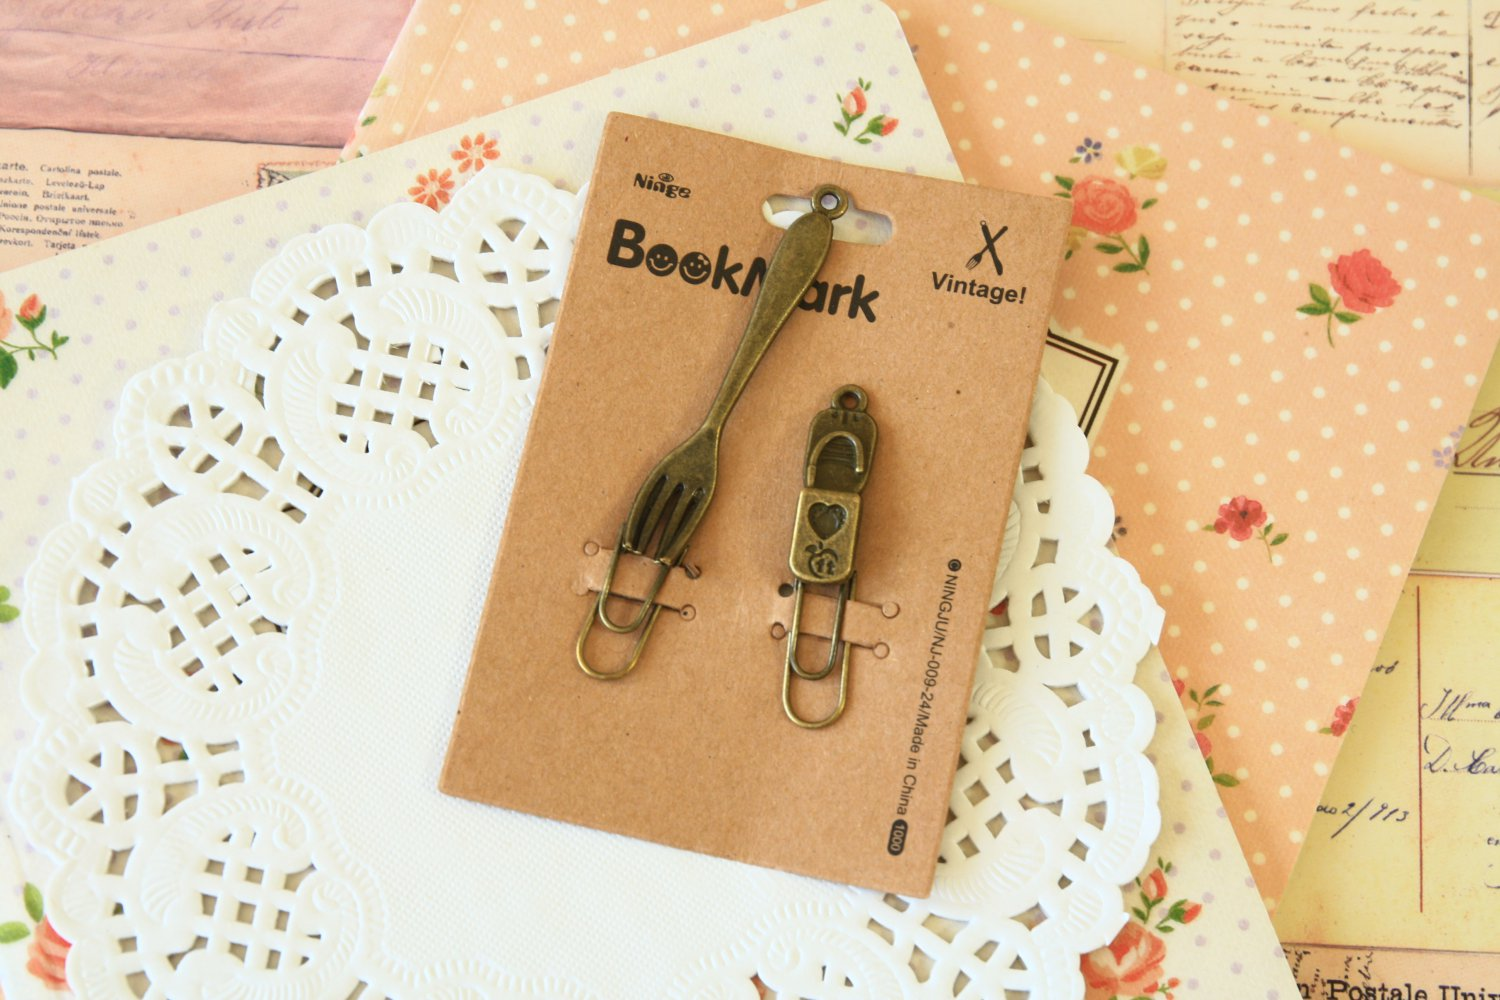 03 Fork and Padlock Bookmark Vintage Style paper clips